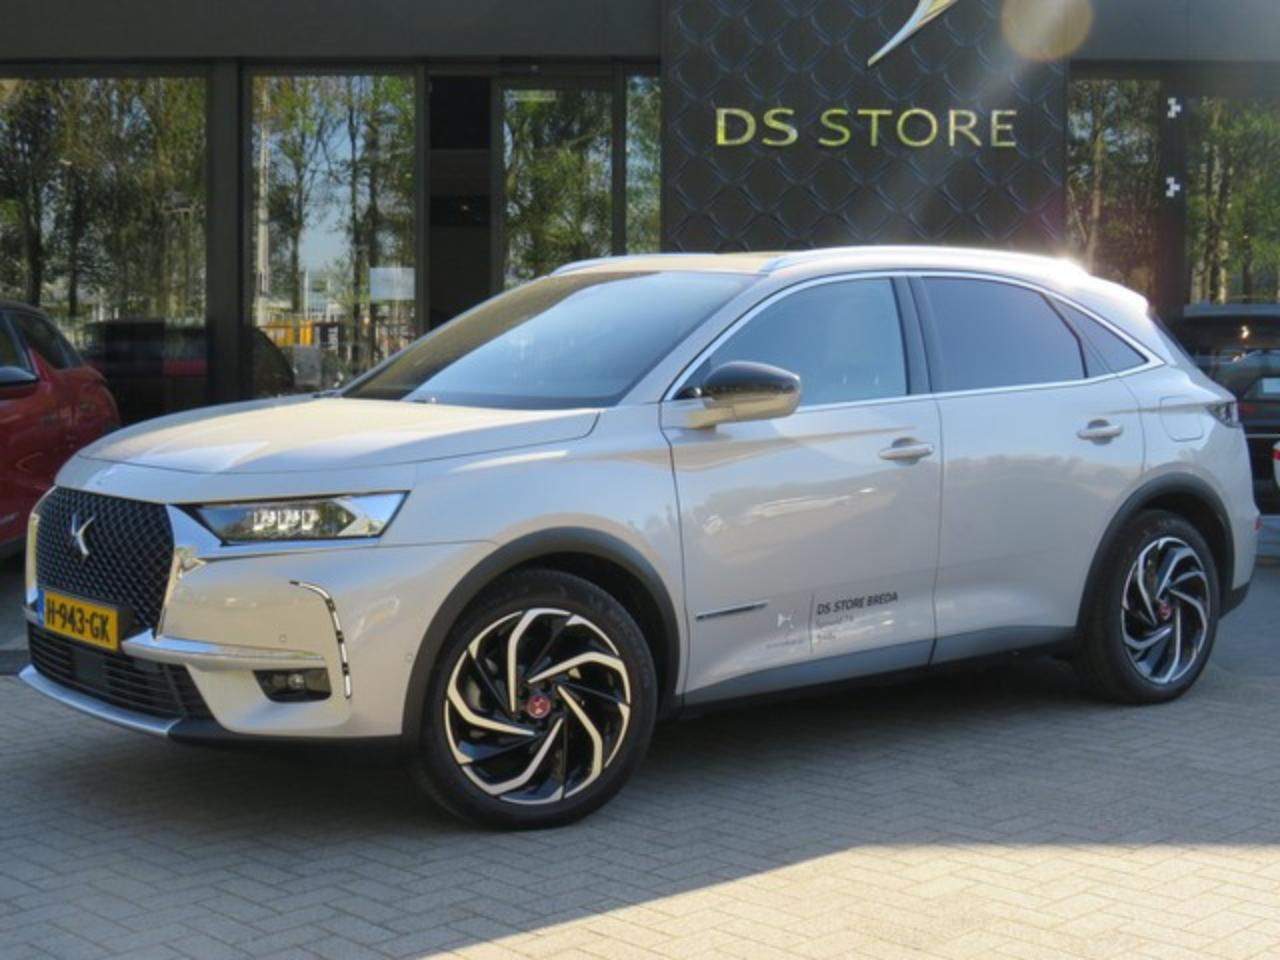 Ds DS 7 Crossback E-Tense 4x4 Grand Chic Full Options | Massagestoel